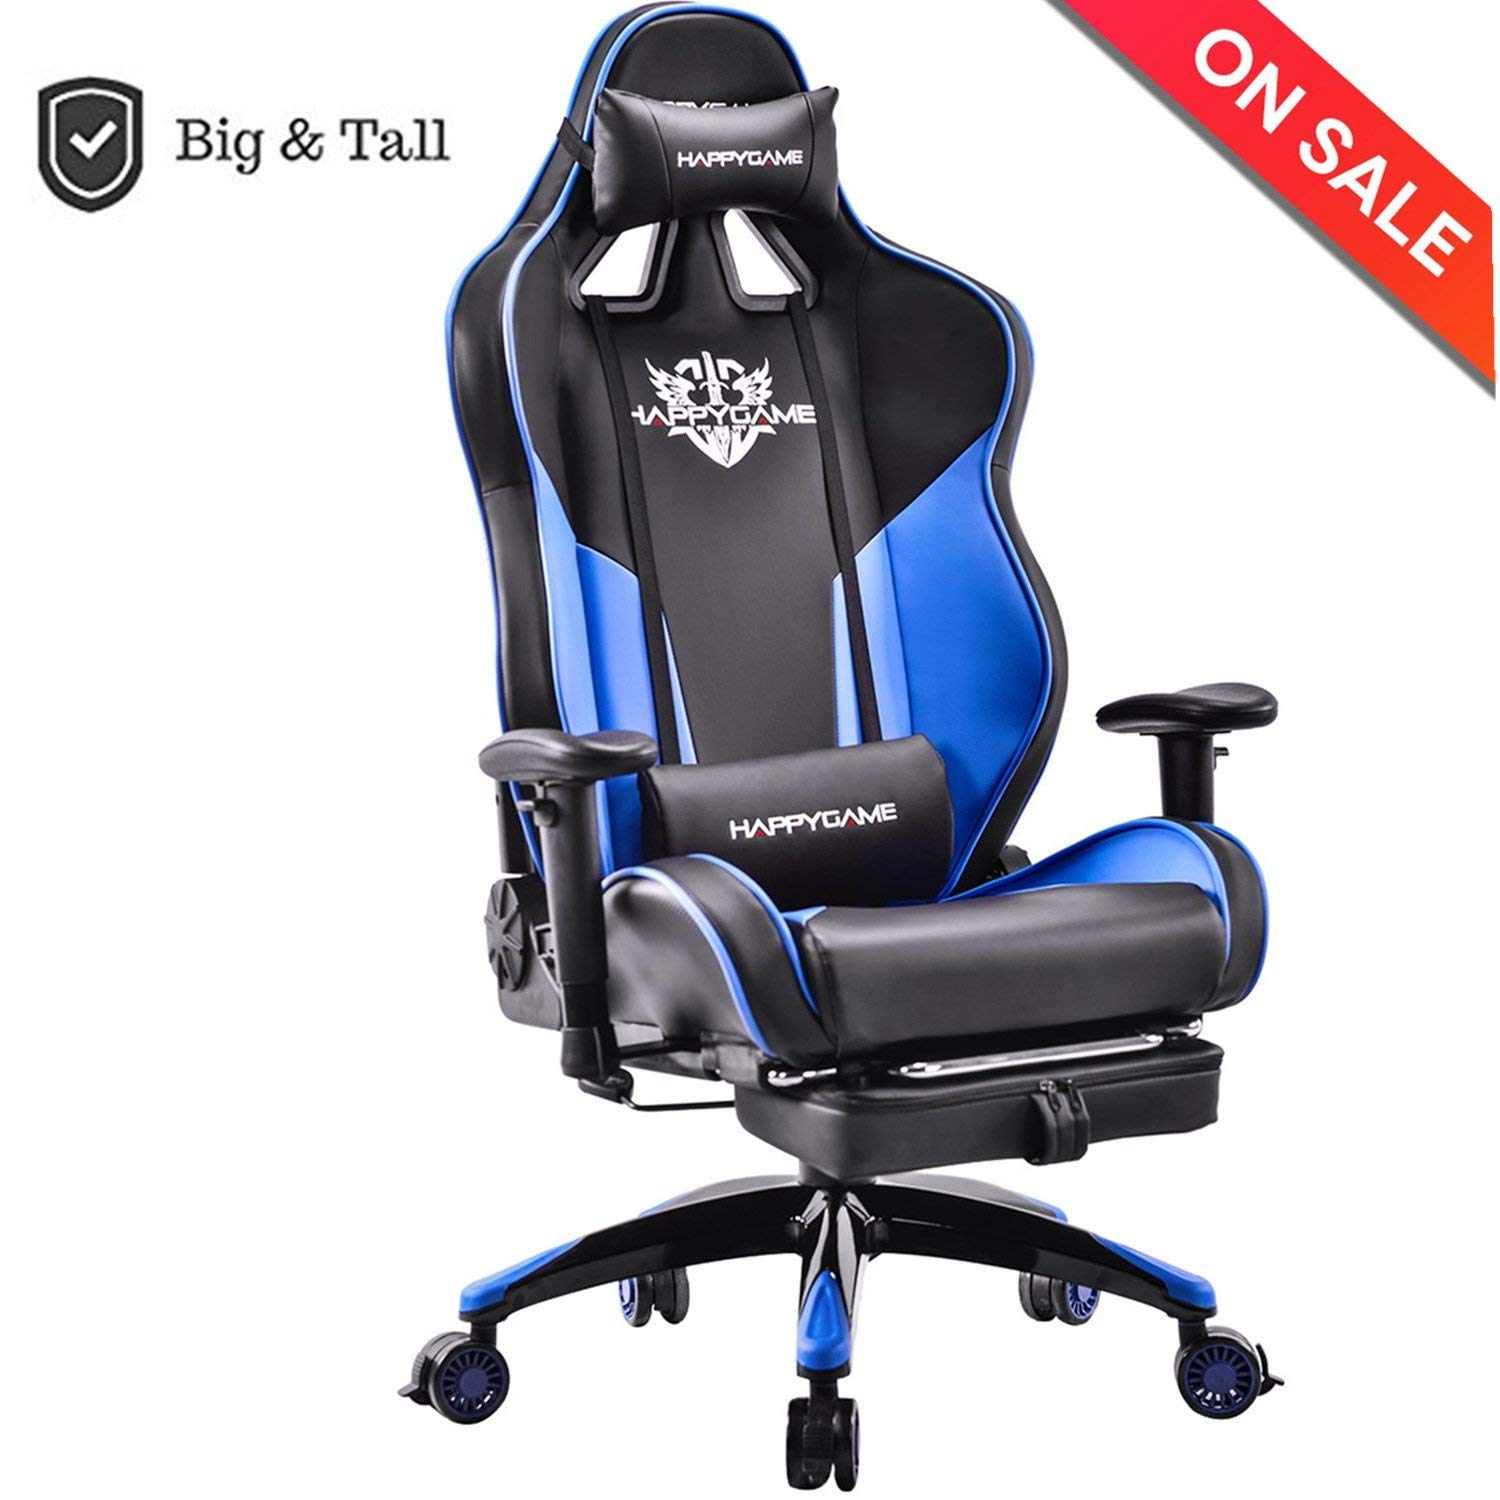 heavy duty gaming chair sunbrella outdoor cushions happygame oversized 400 lb capacity racing high back ergonomic swivel computer chairs executive office